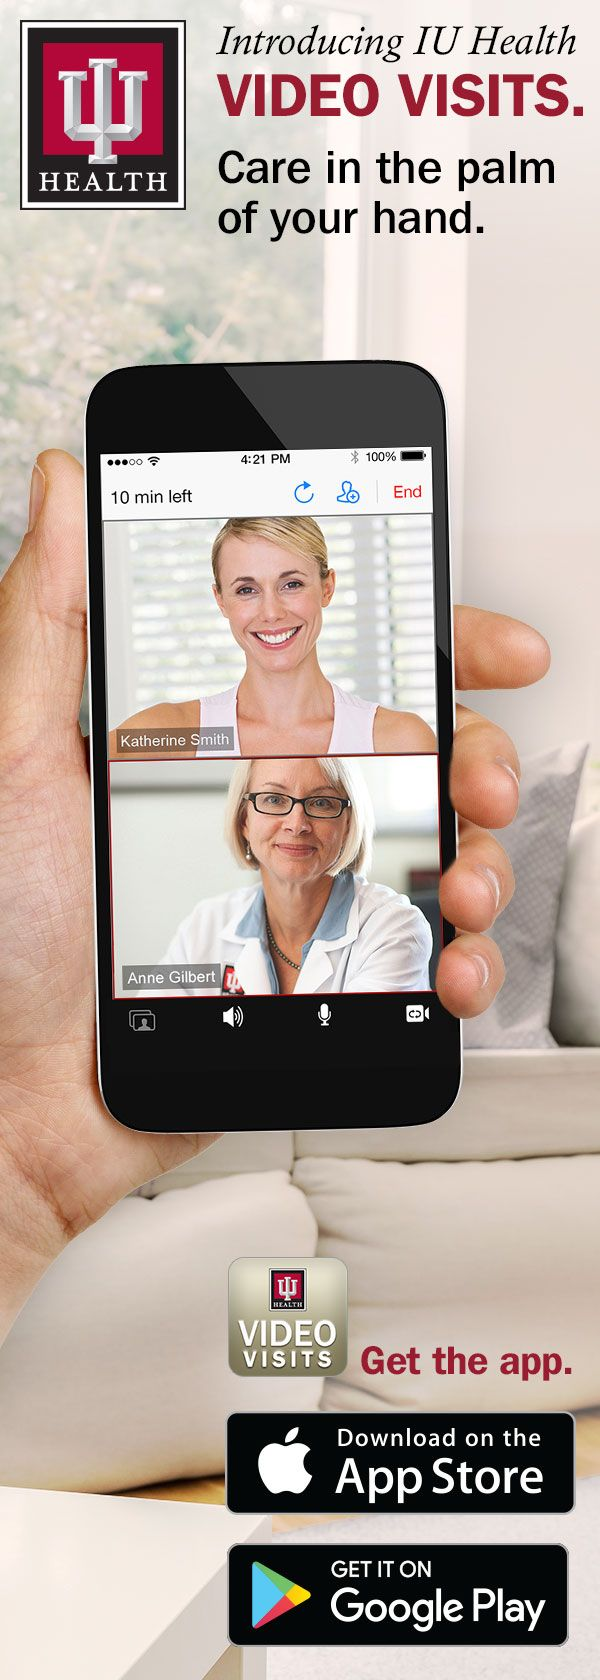 IU Health Video Visits offers convenient access to highly-skilled experts from your smartphone, tablet or computer, 8 am to 8 pm every day. Download the app and see a provider today.